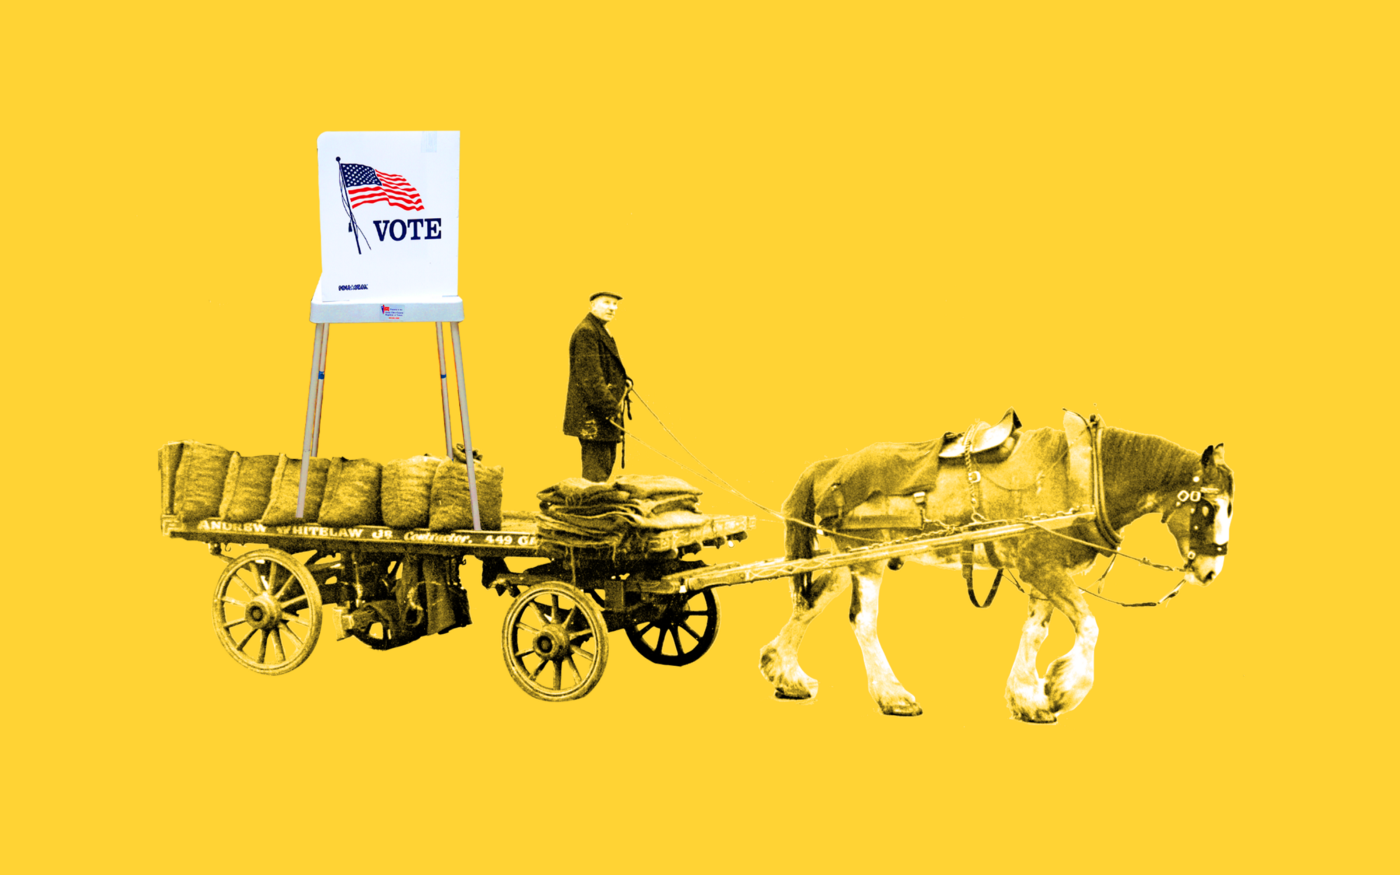 A photo collage of a man driving a horse-pulled cart, with a voting booth on the cart.